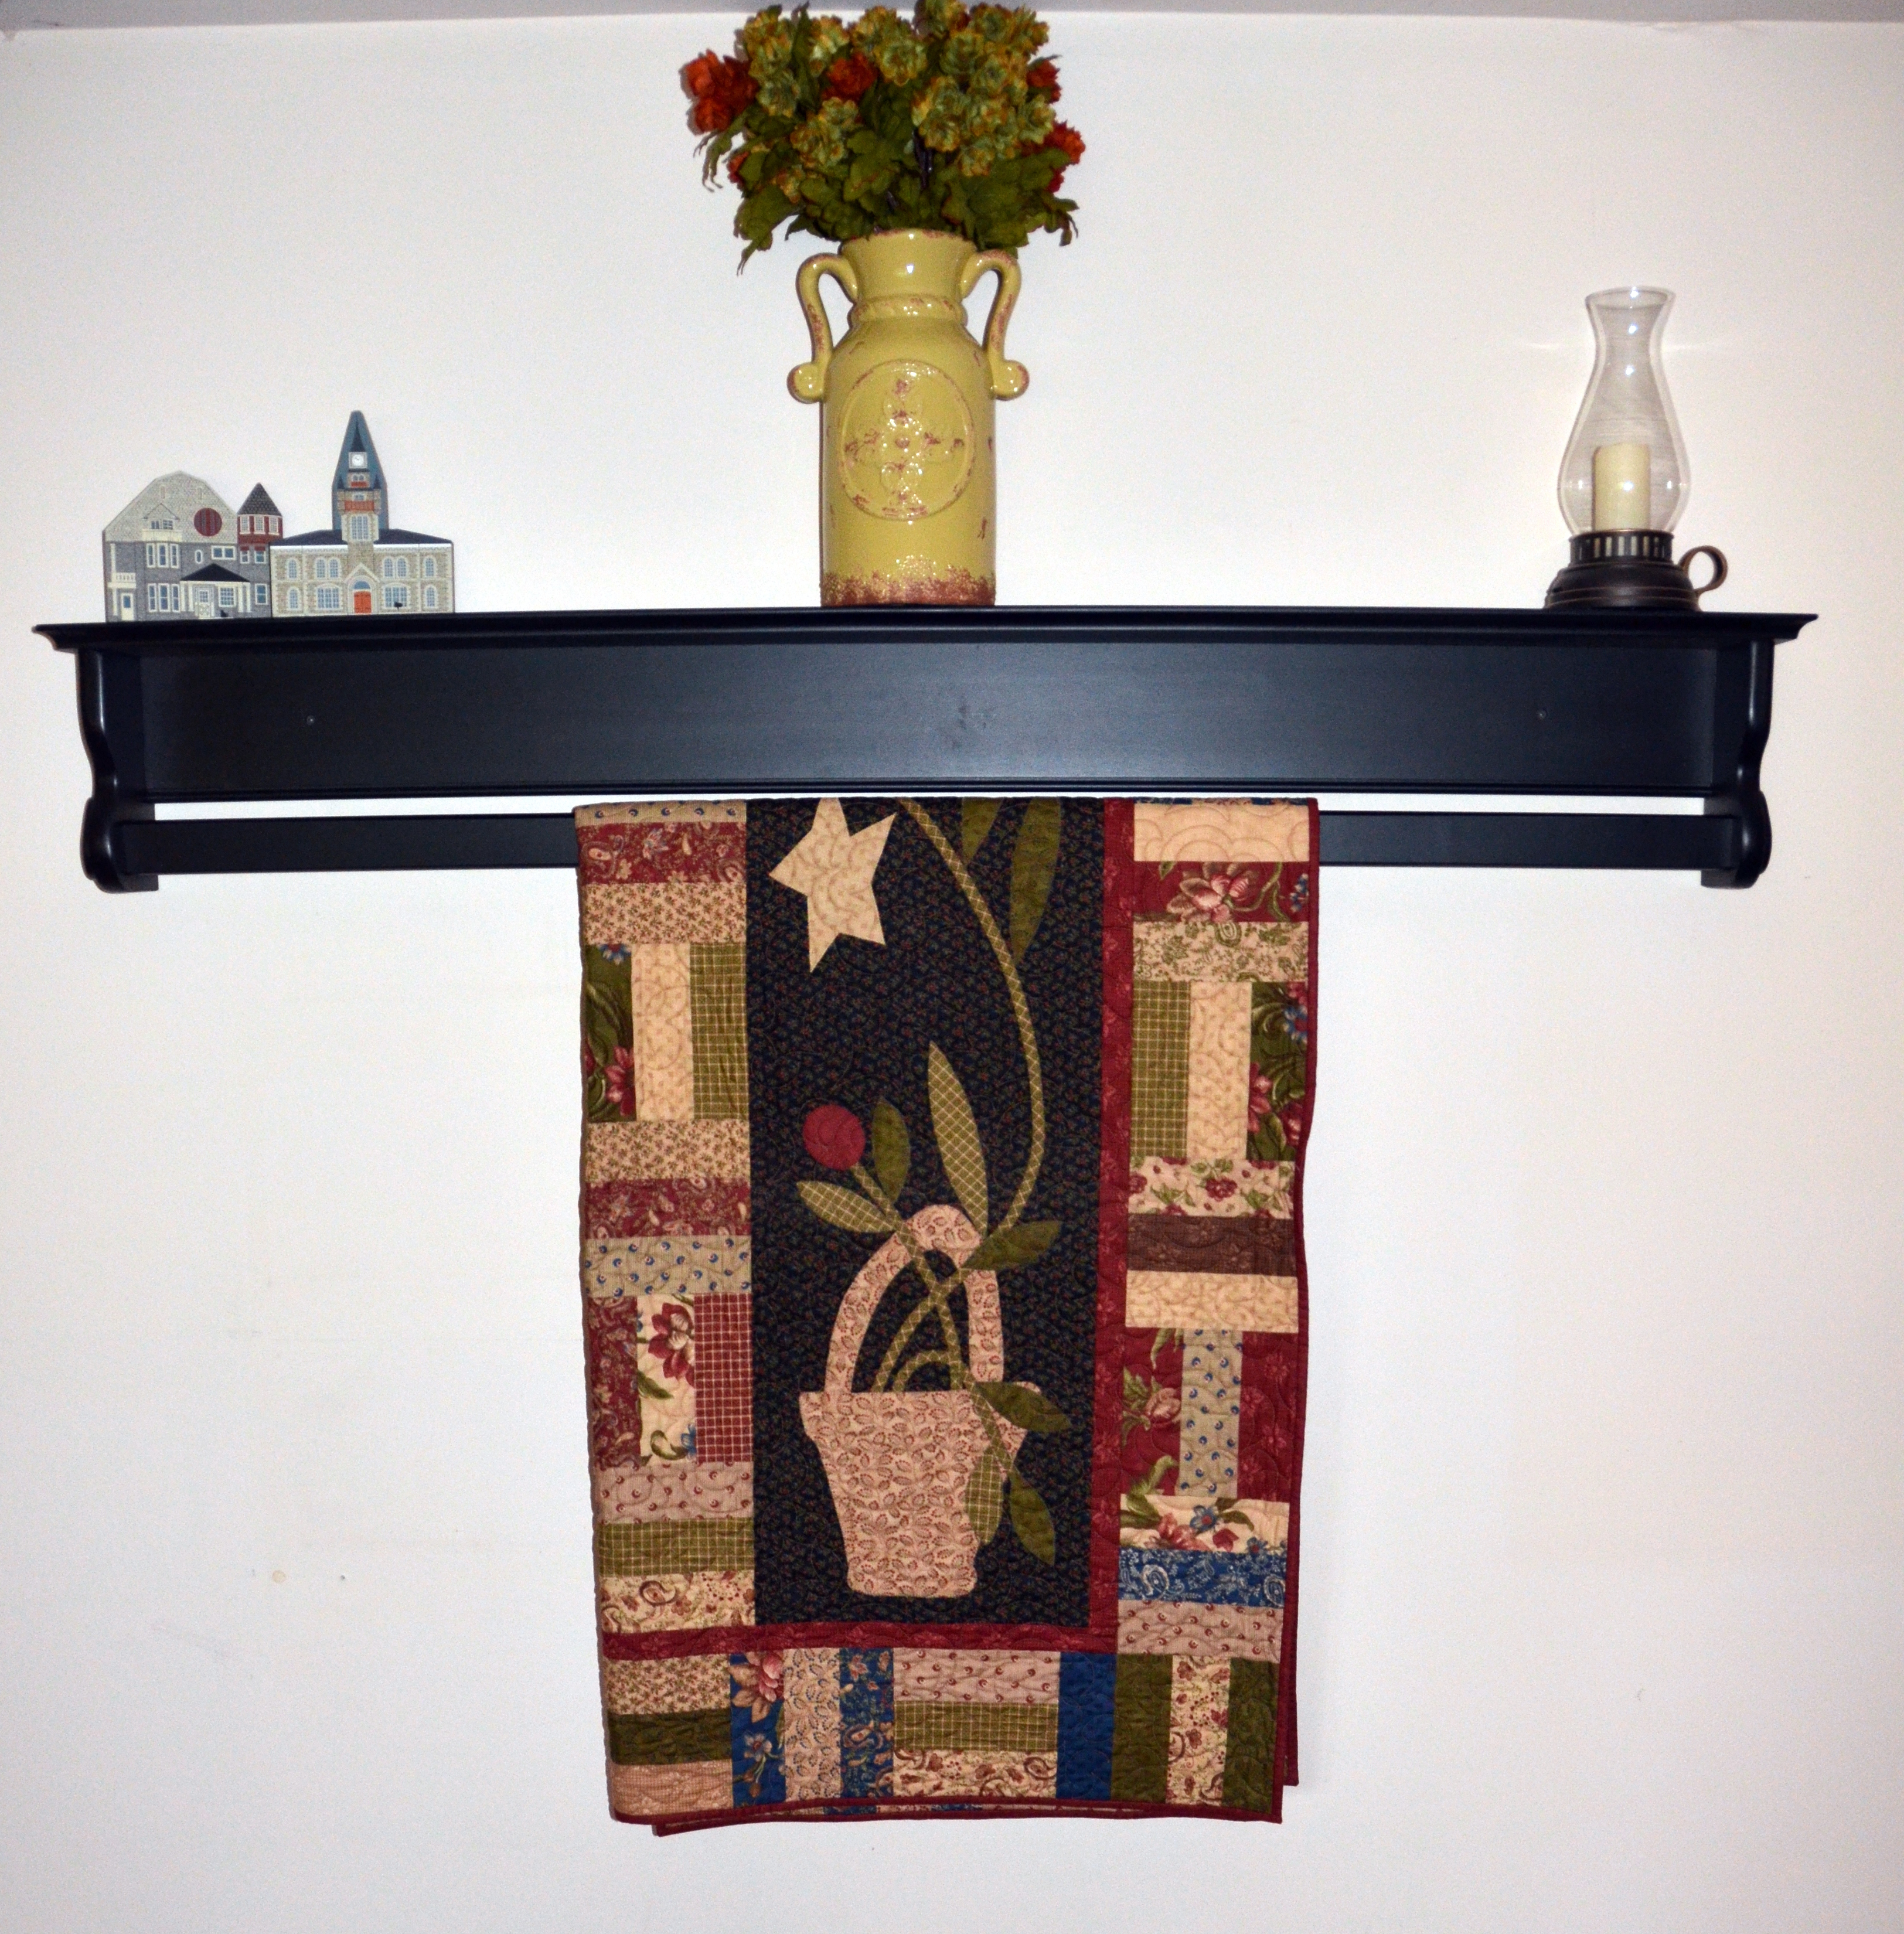 Wooden Hanging Quilt Shelf - Wall Hanger for Sale | DWR Custom ... : quilt wall hangers wooden - Adamdwight.com